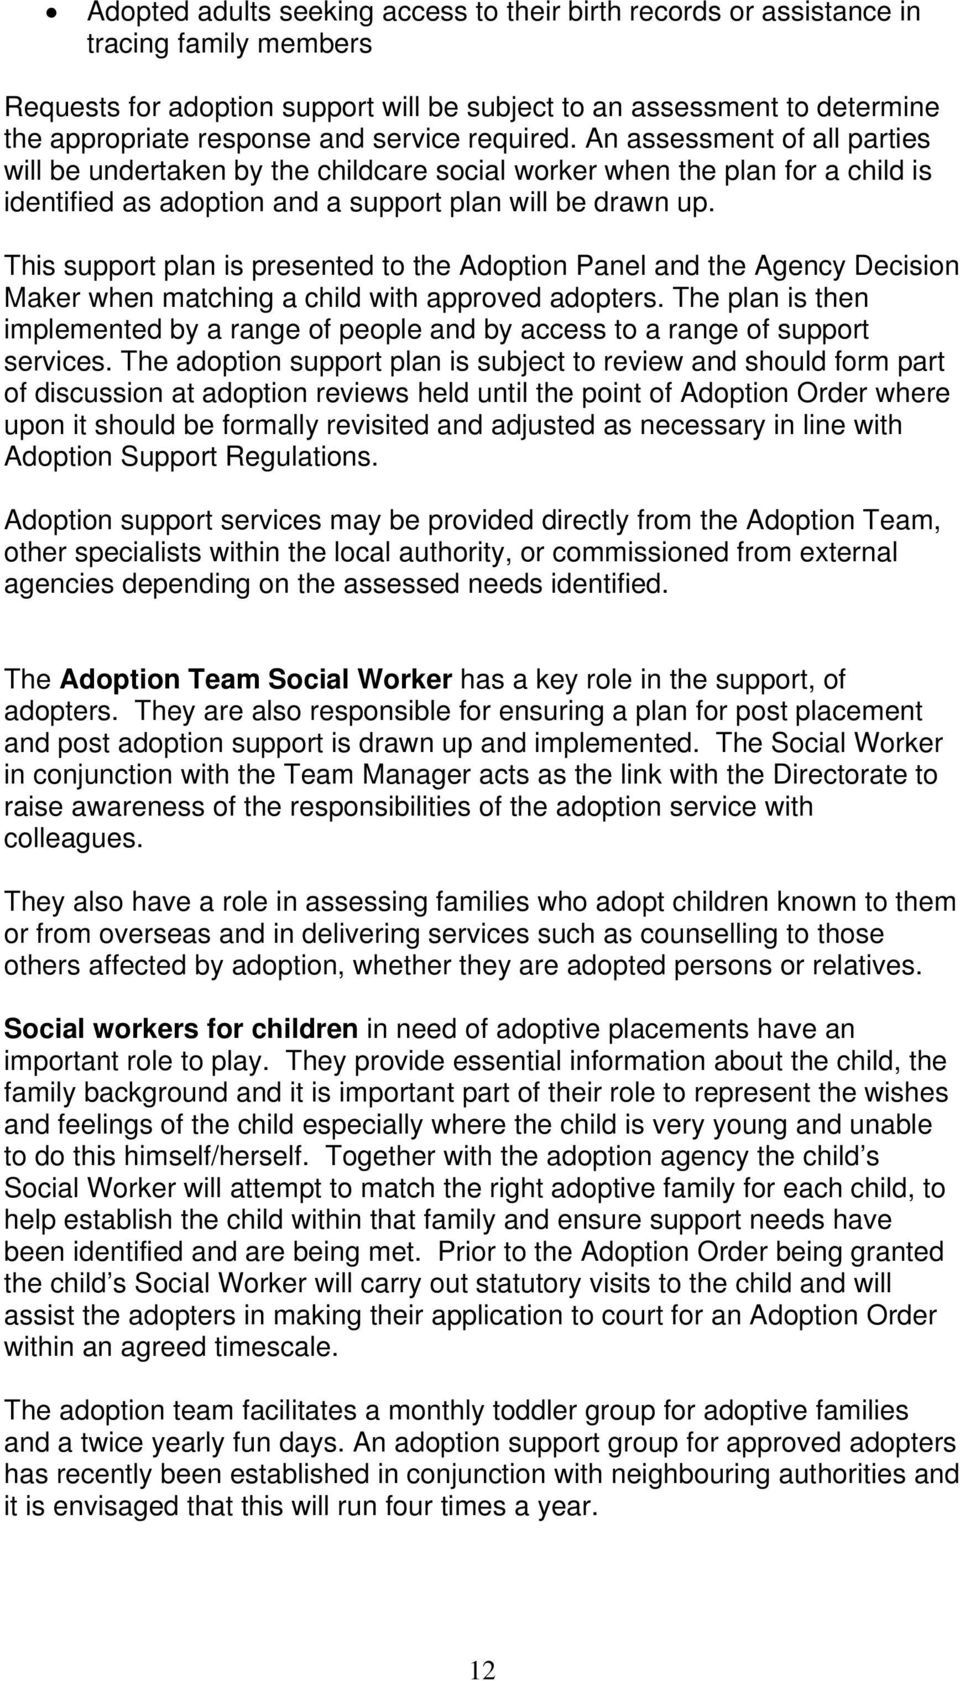 This support plan is presented to the Adoption Panel and the Agency Decision Maker when matching a child with approved adopters.